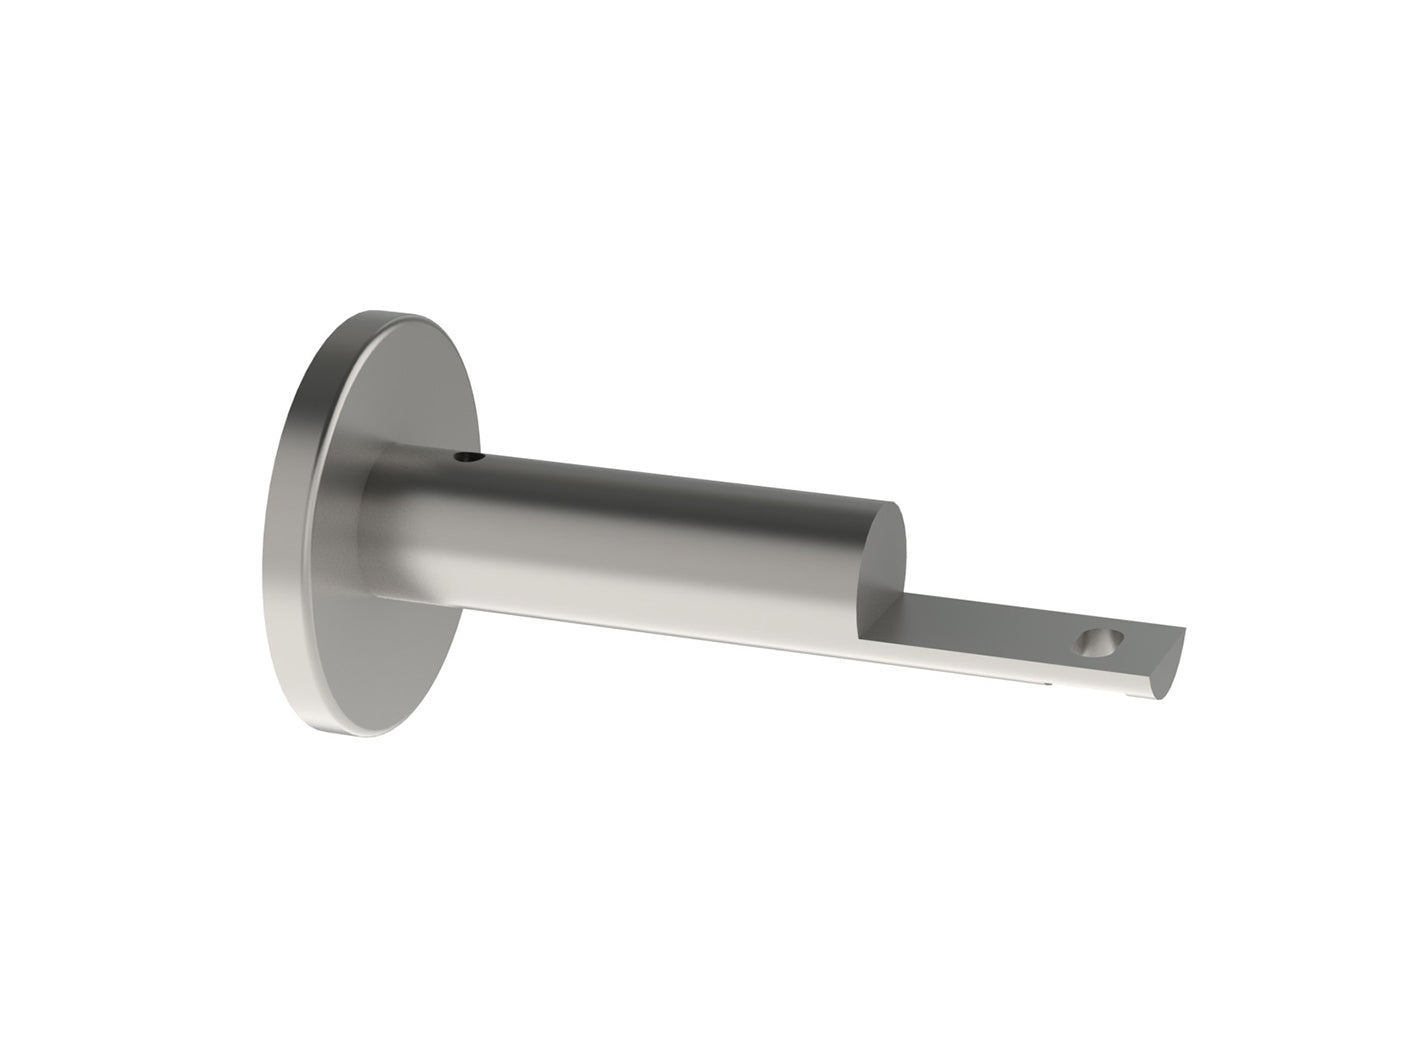 stainless steel passing bracket for 19mm curtain poles